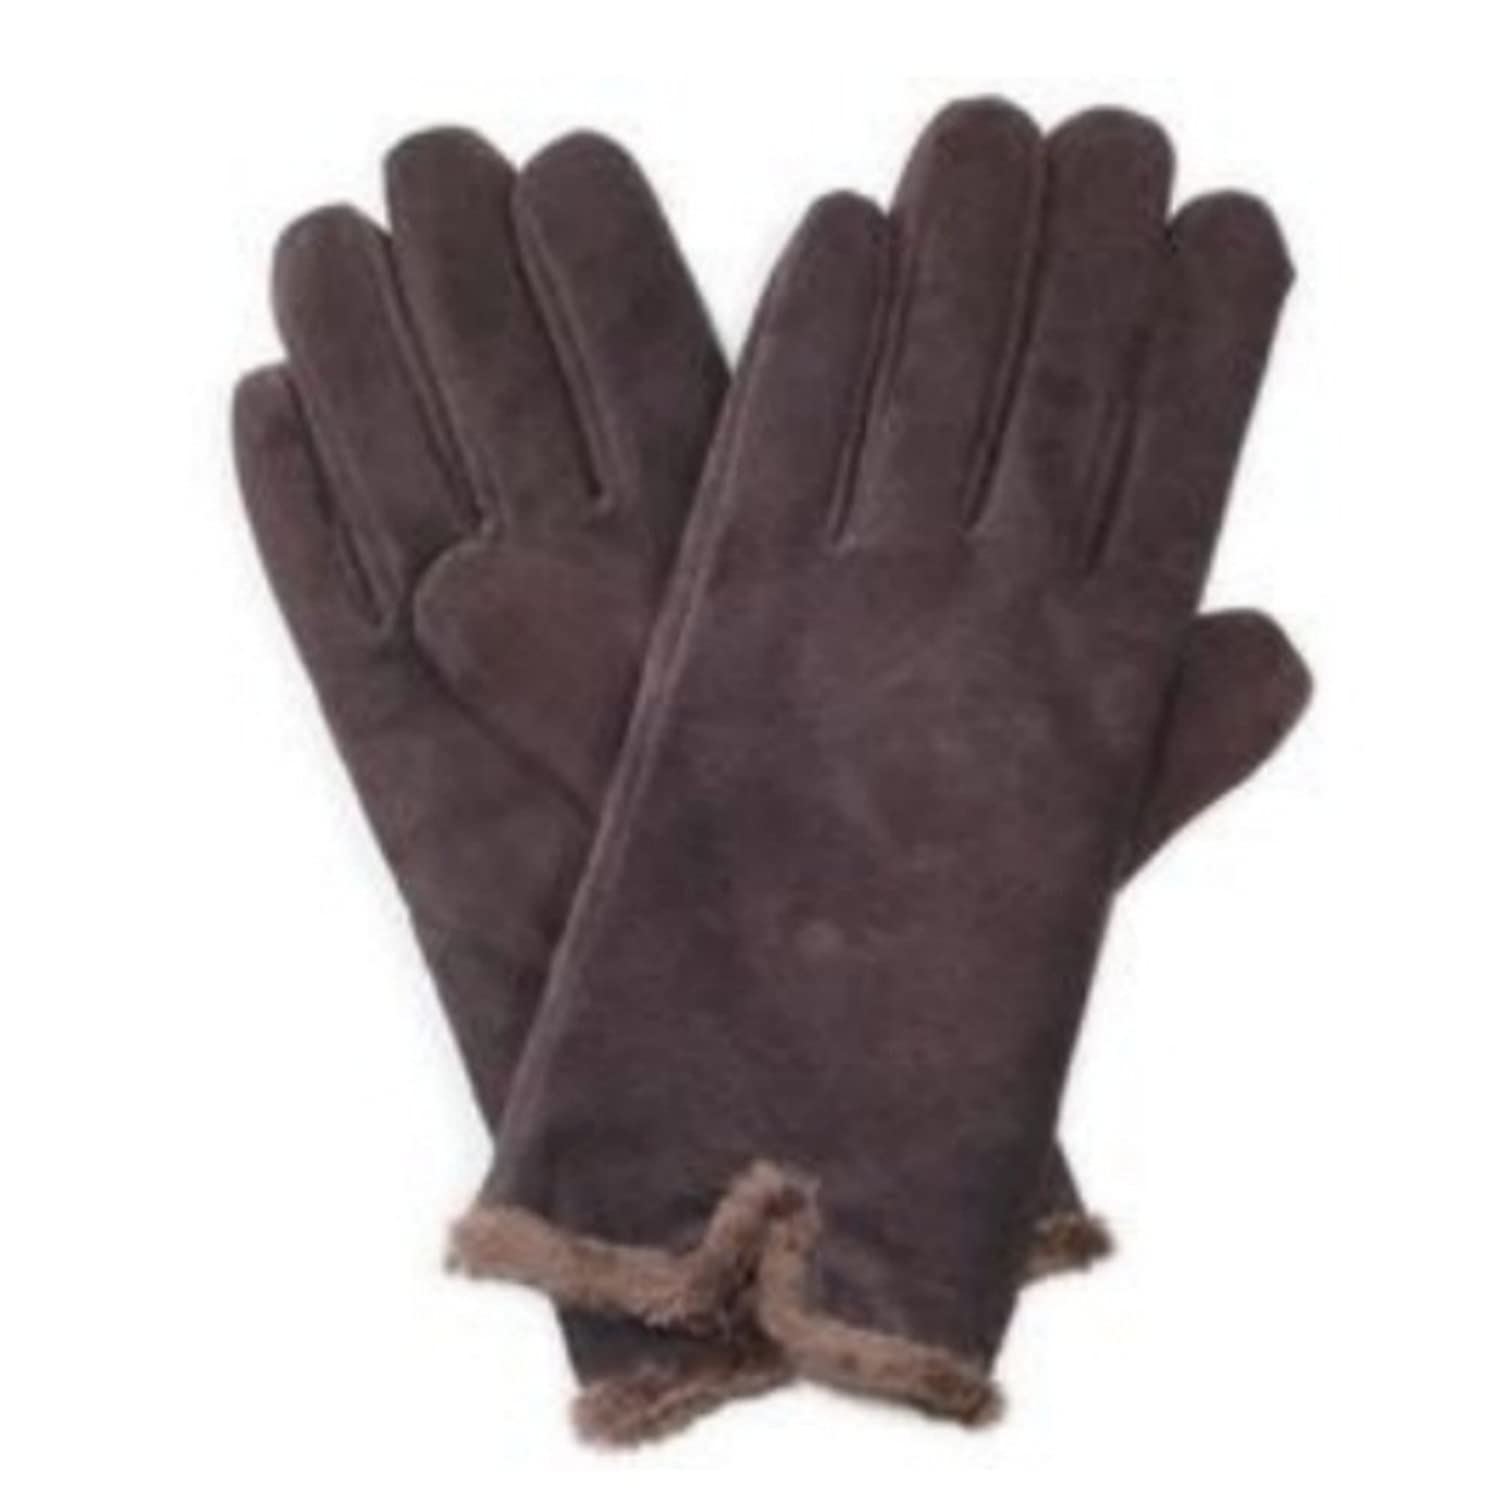 Ladies leather gloves isotoner - Isotoner Womens Brown Suede Leather Gloves With Back Vent Microluxe Lining L At Amazon Women S Clothing Store Cold Weather Gloves